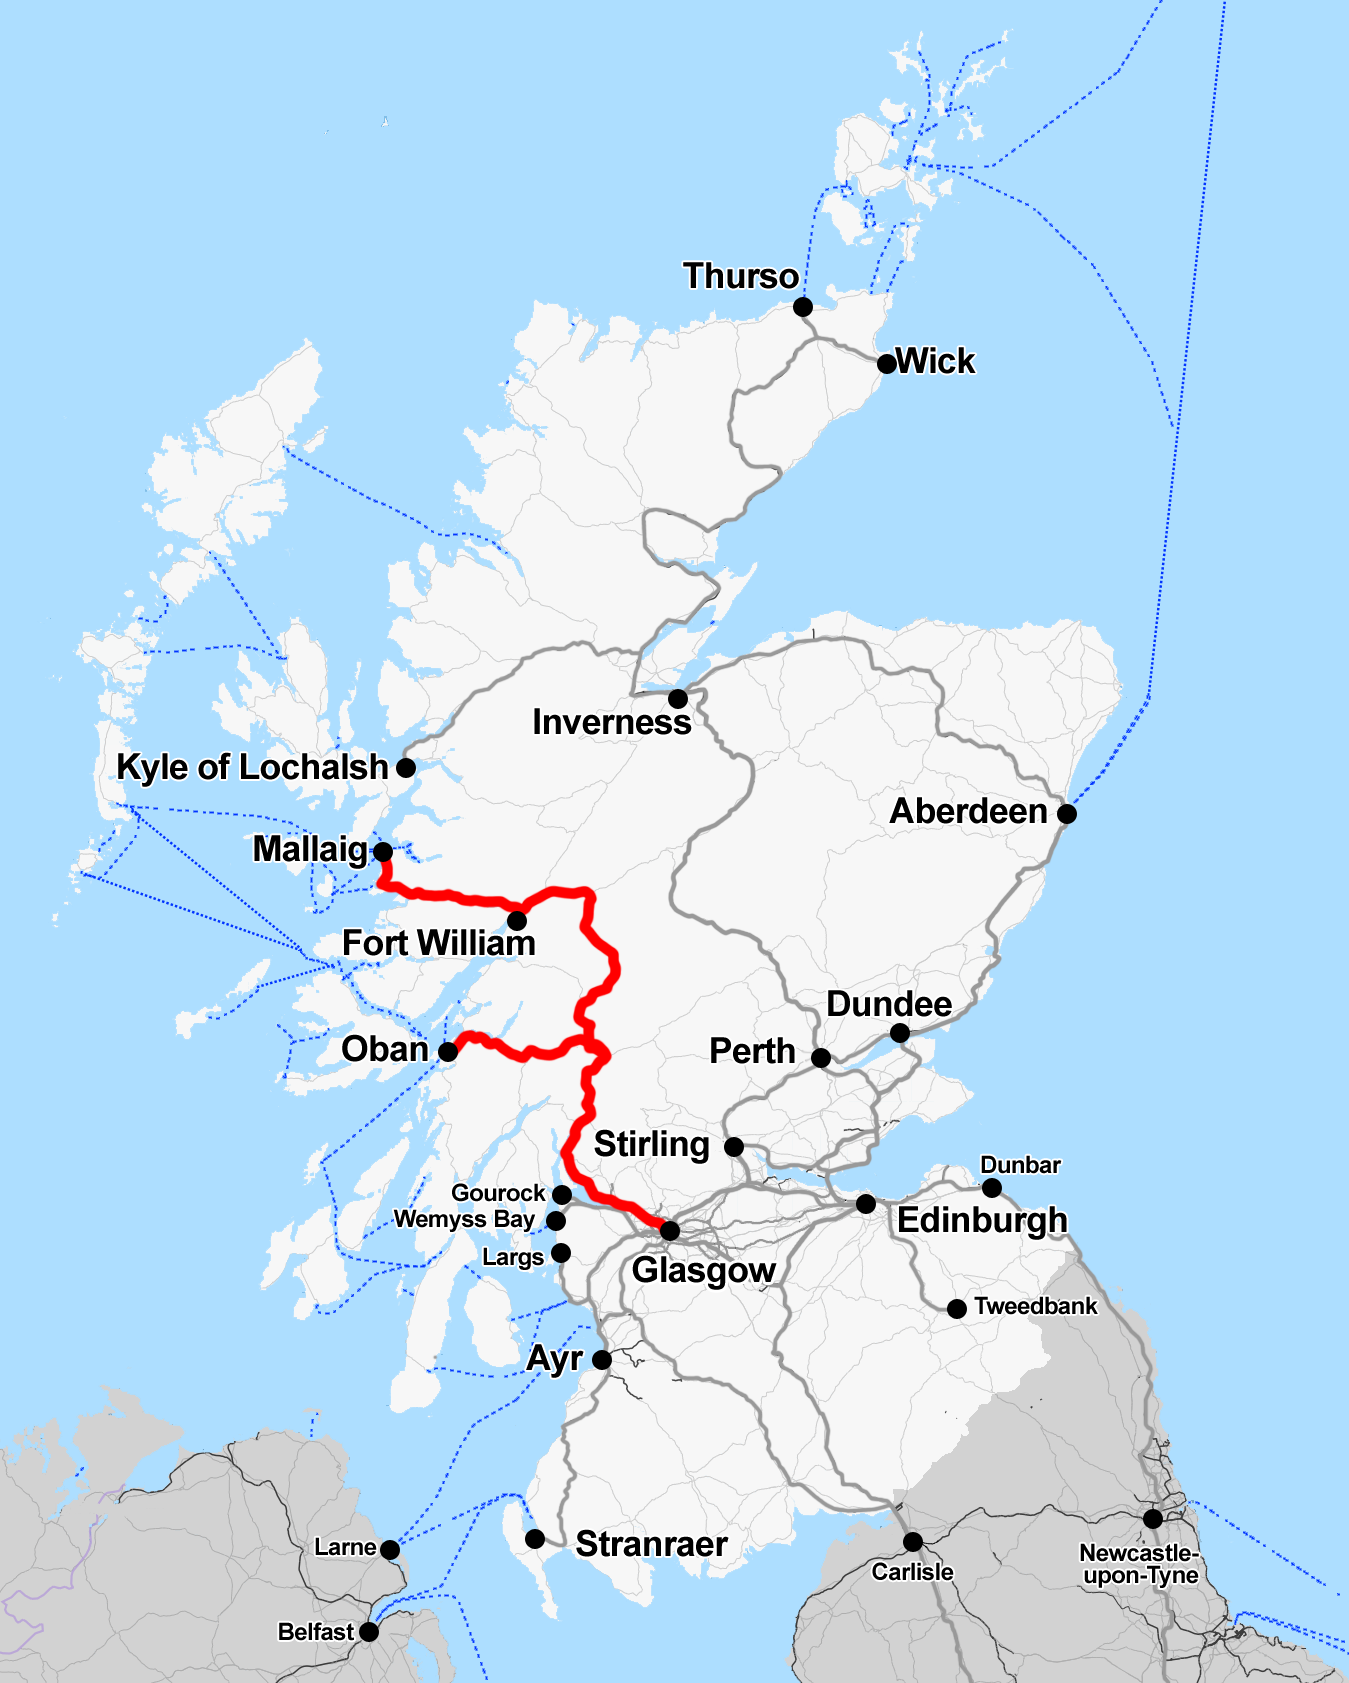 https://upload.wikimedia.org/wikipedia/commons/a/ac/Rail_map_Scotland_West_Highland_line.png